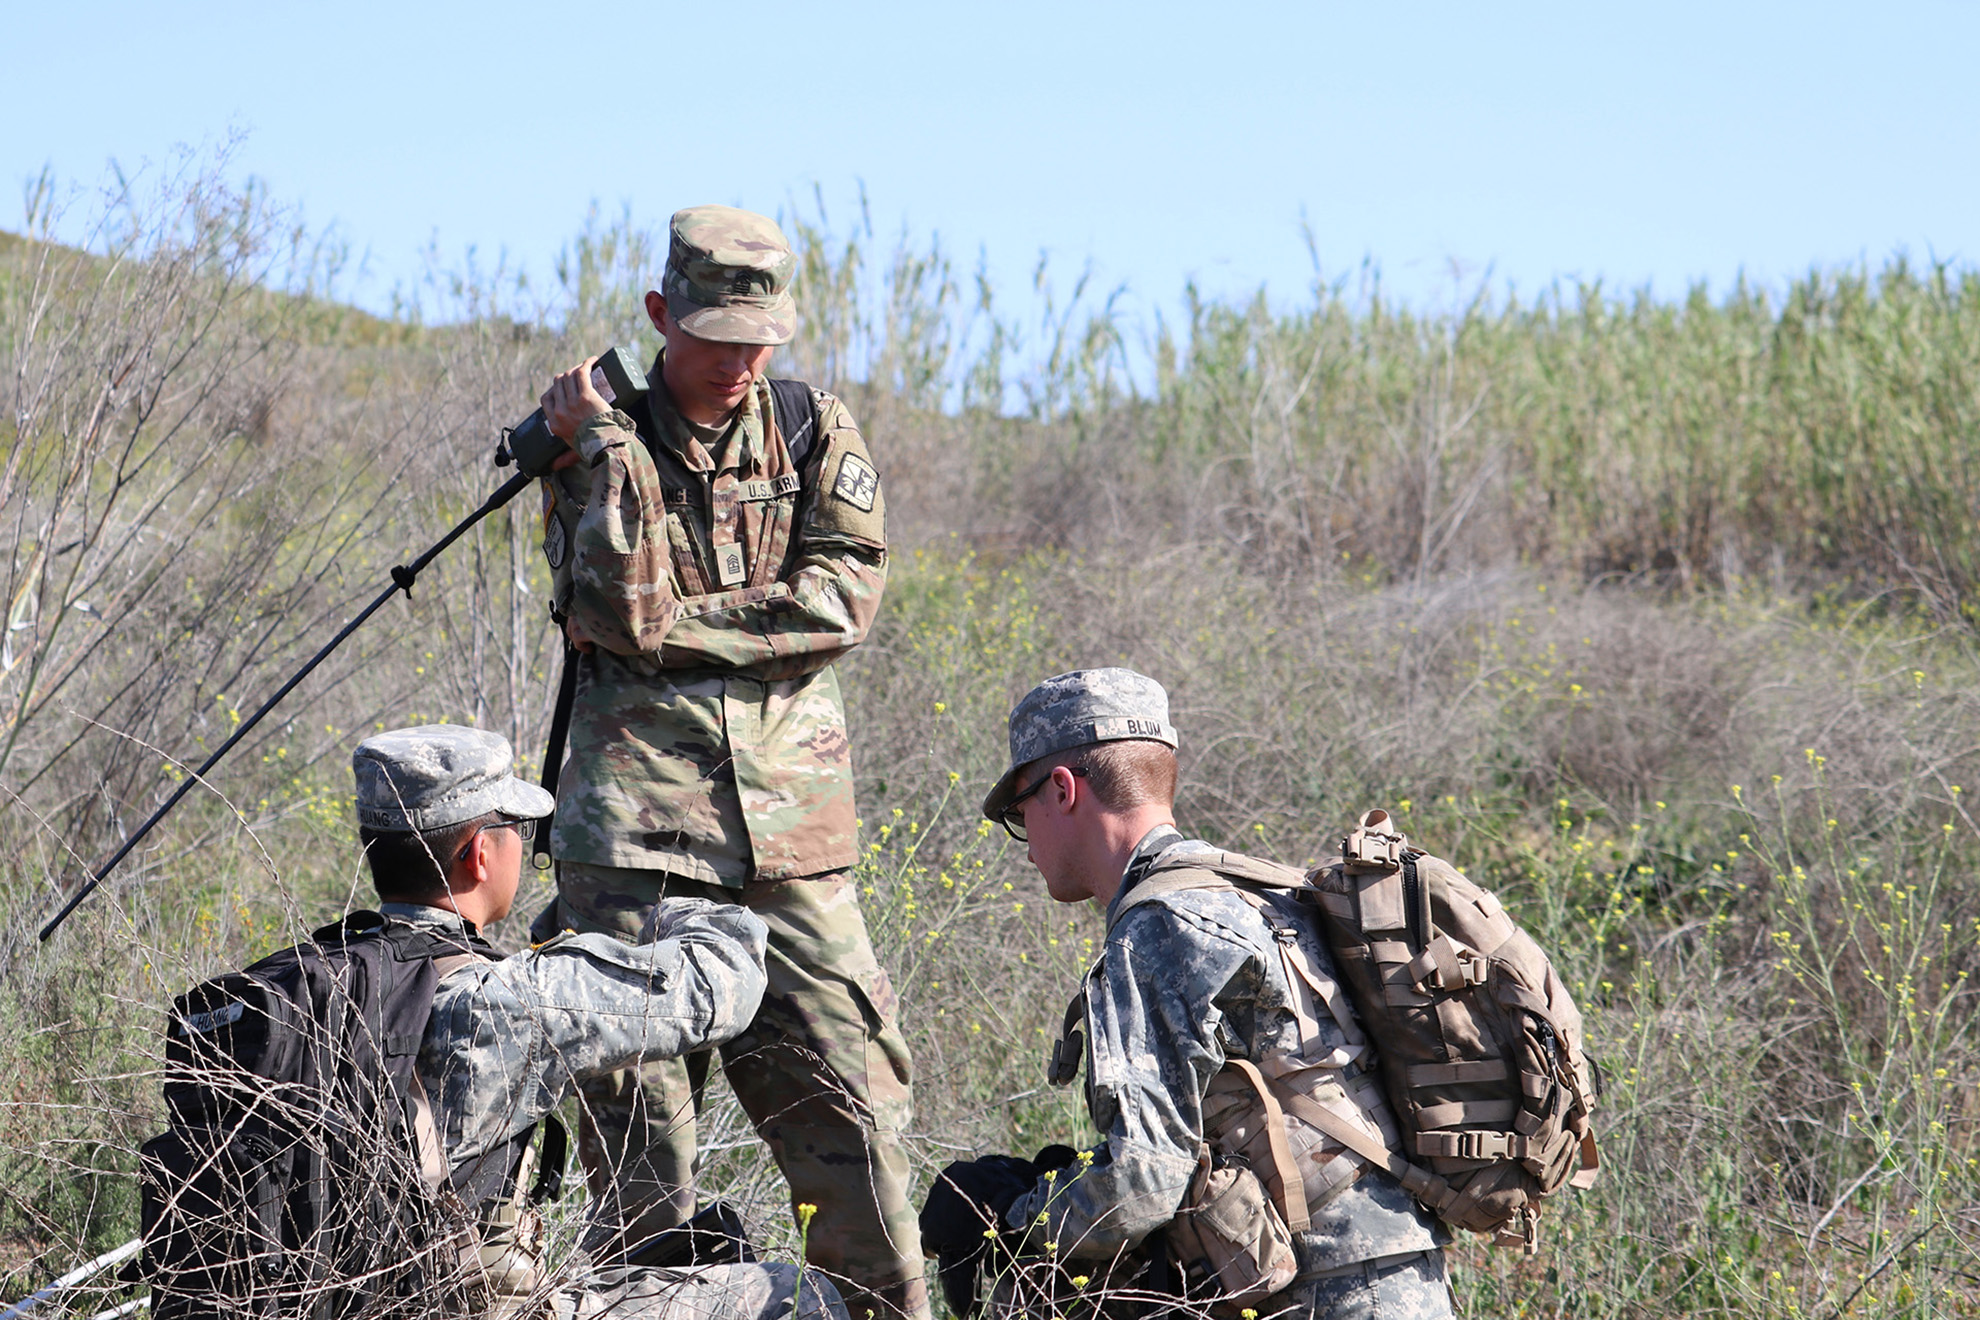 ROTC cadets conduct tactical training at Camp Pendleton :: News